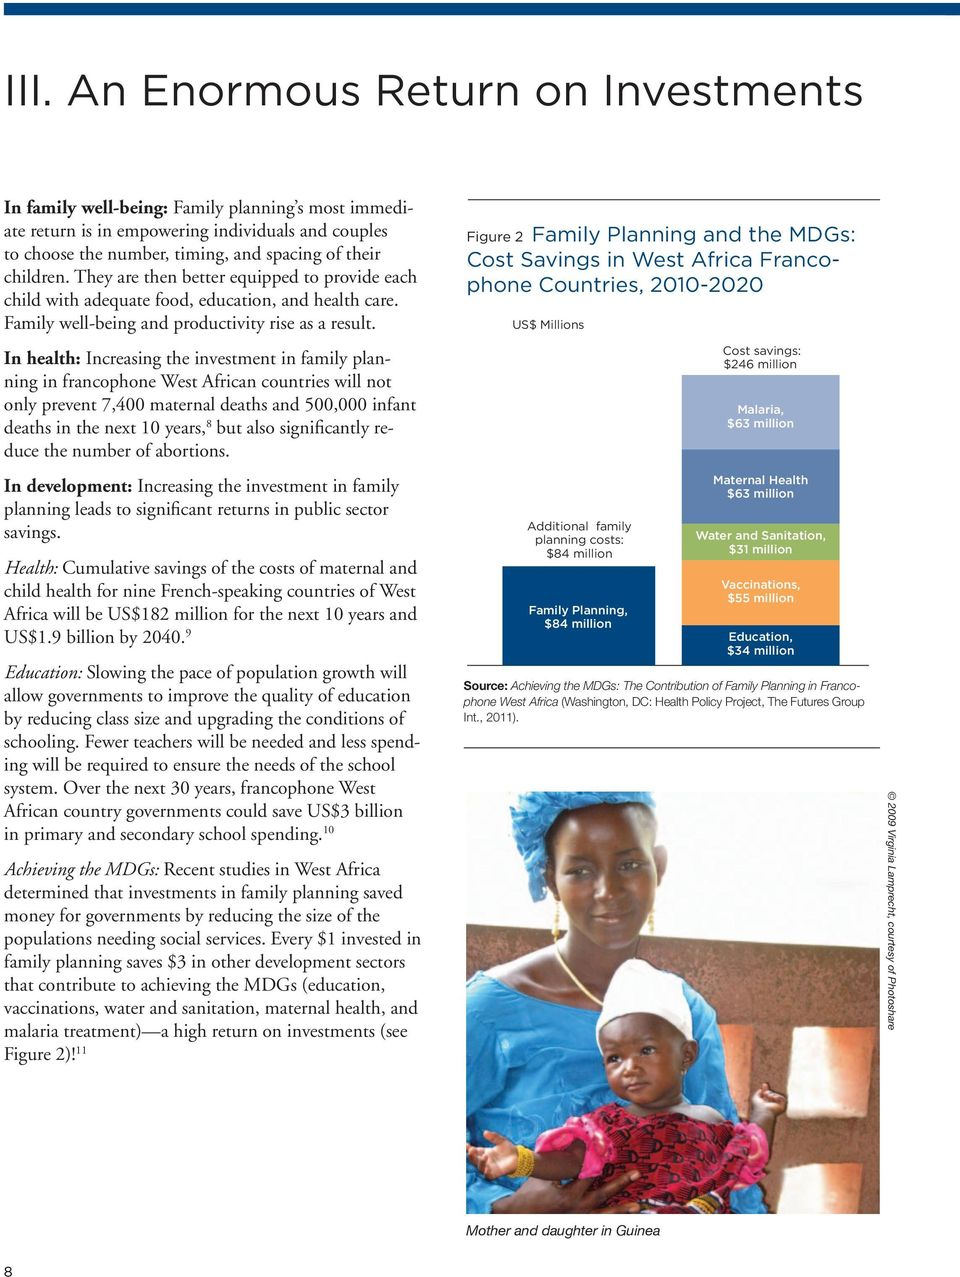 In health: Increasing the investment in family planning in francophone West African countries will not only prevent 7,400 maternal deaths and 500,000 infant deaths in the next 10 years, 8 but also